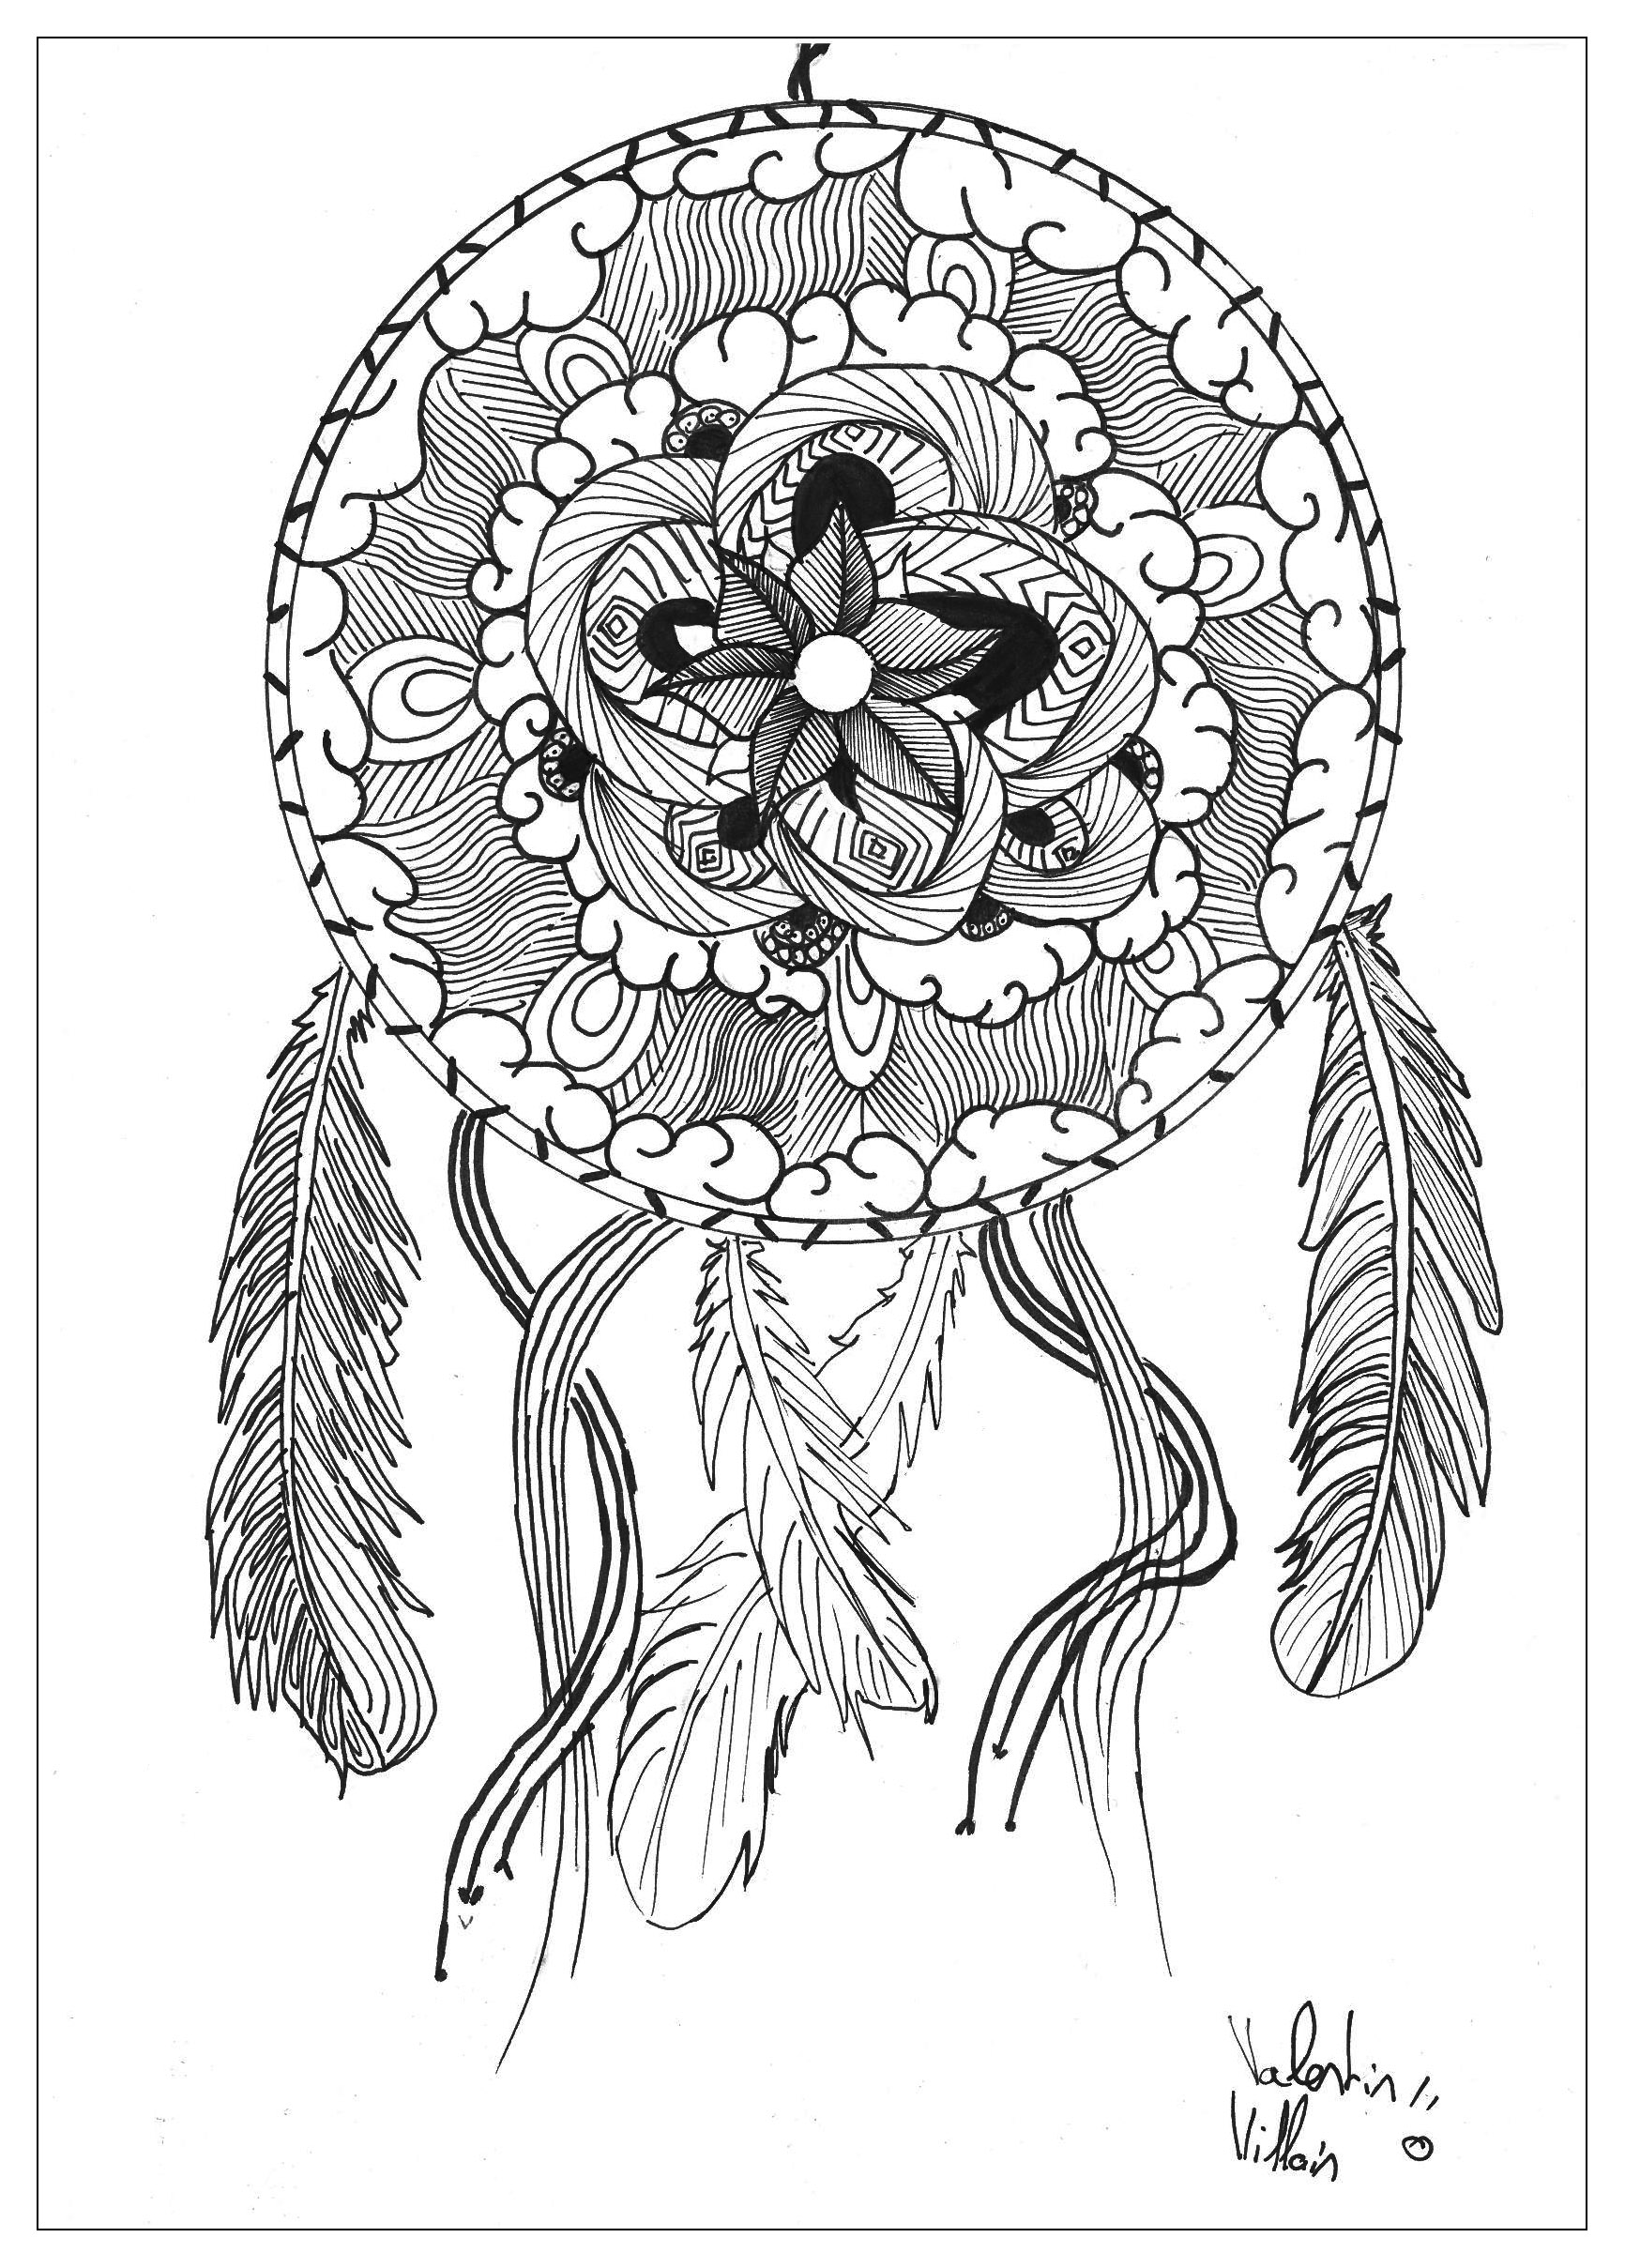 A Dreamcatcher / Mandala guaranteed 100% Zen, for a moment of pure relaxation. Symbolic Meaning of Mandala. Mandalas offer balancing visual elements, symbolizing unity and harmony ... It's even more important with this drawing because it's both a Mandala and a Dreamcatcher, drawn with artistic sense.